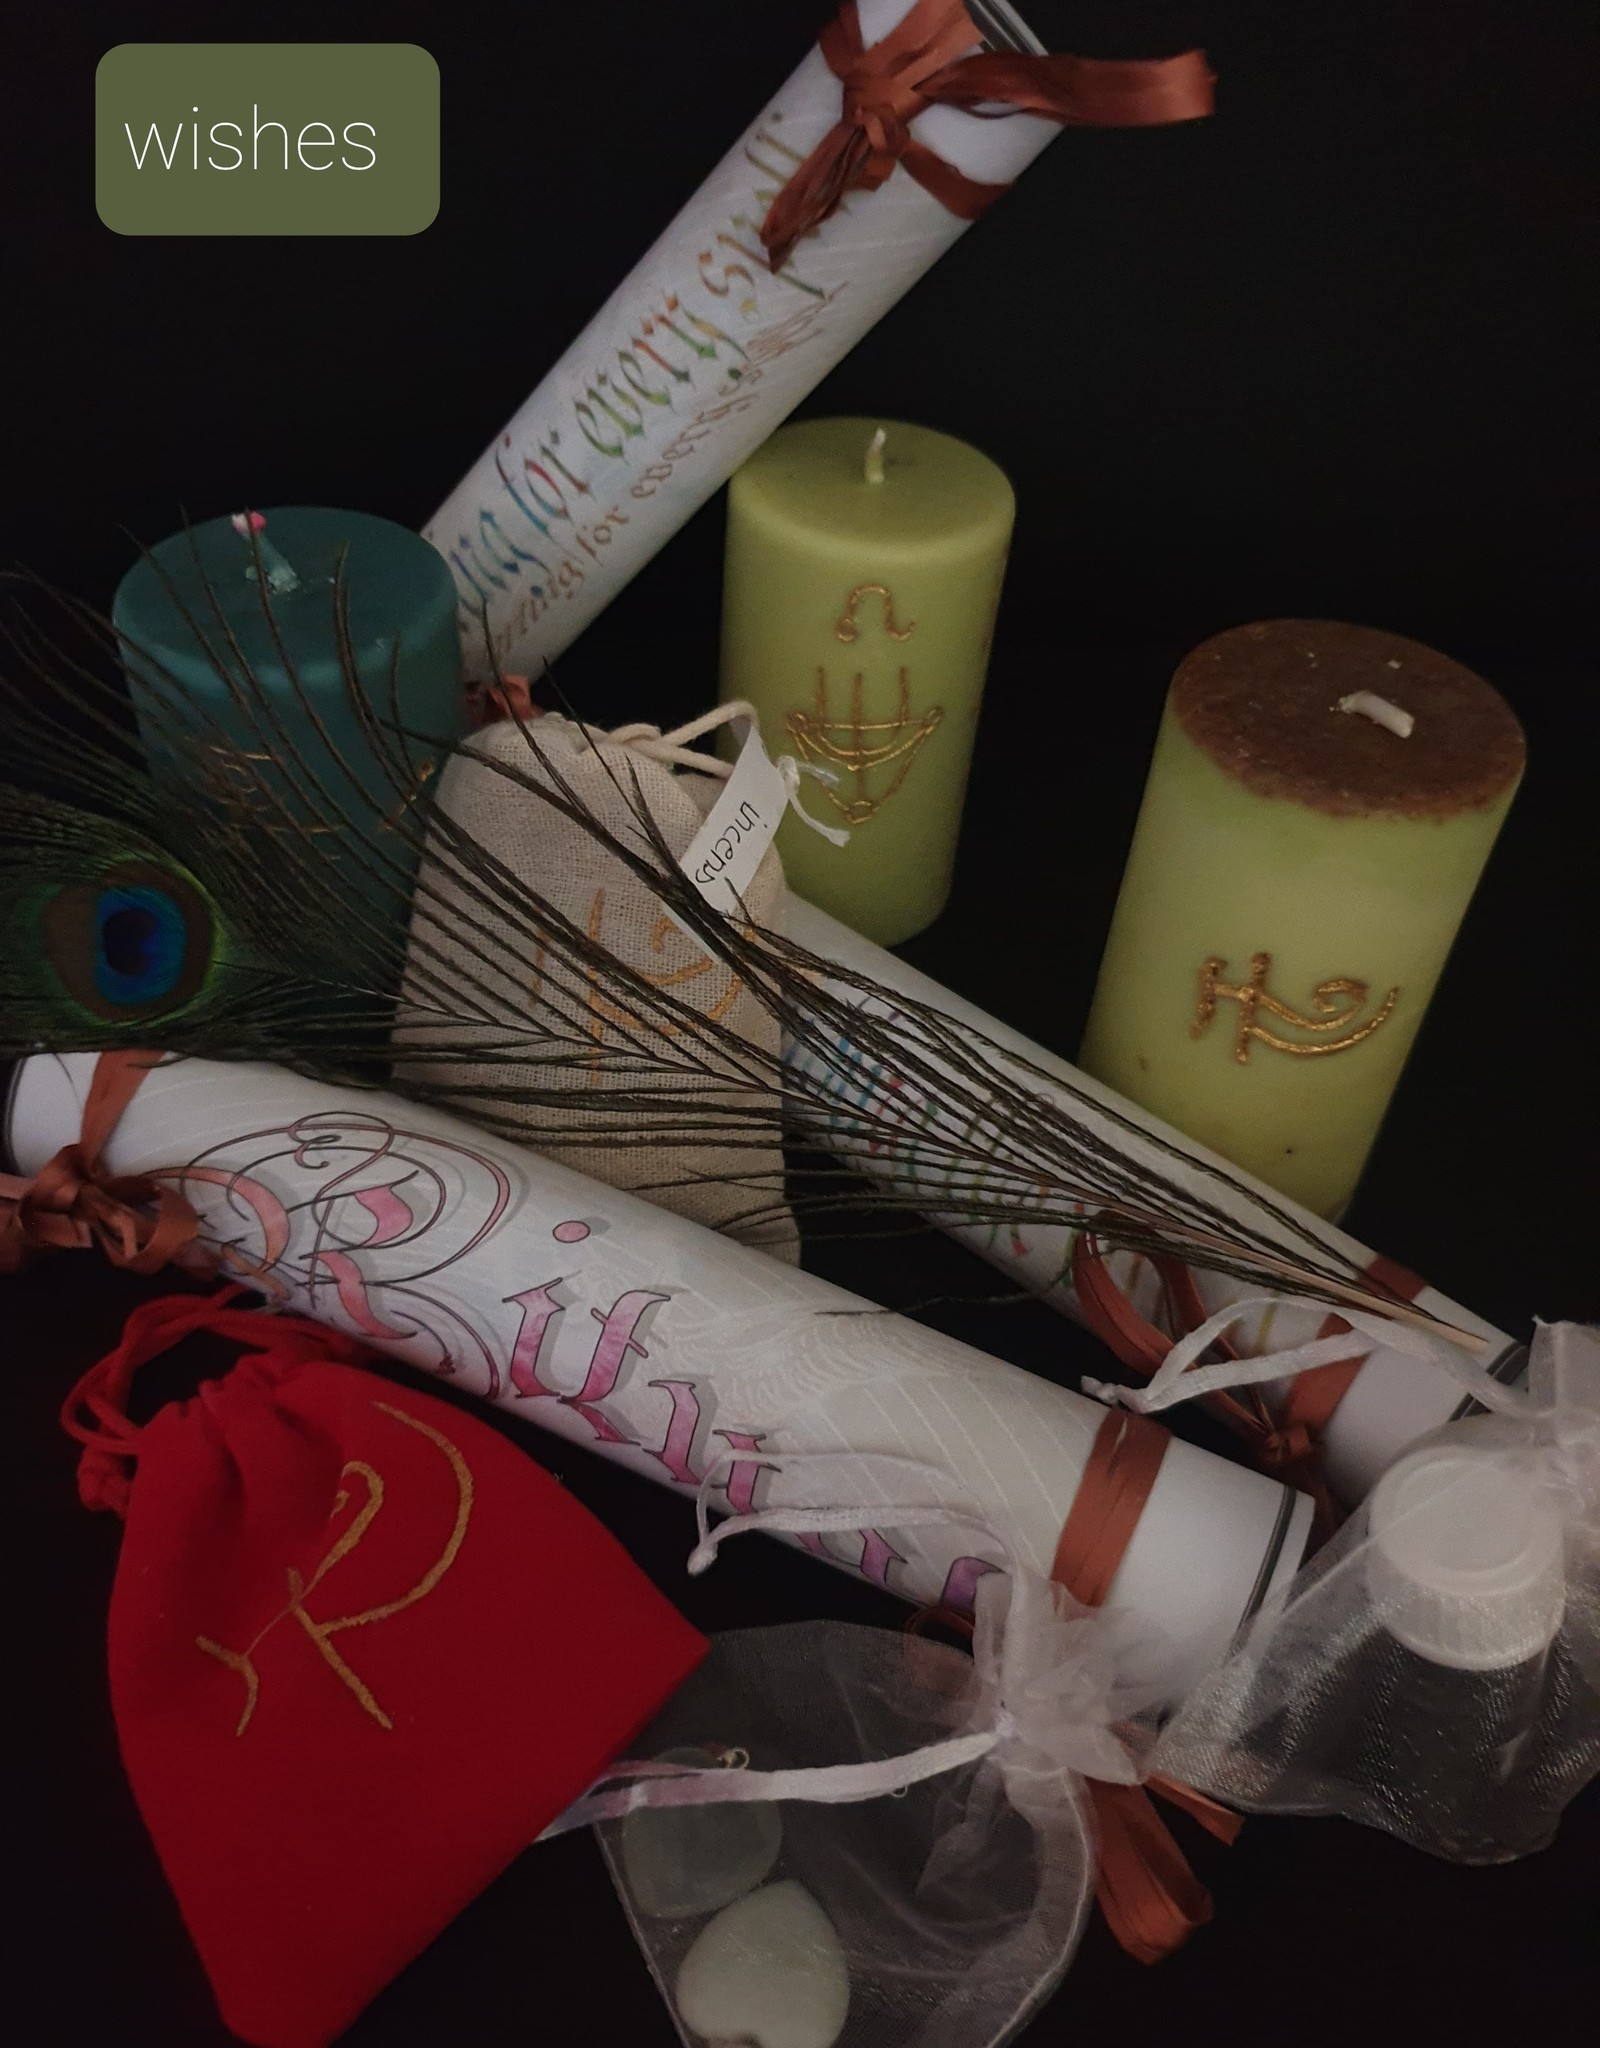 seazido - wevyra Ritual for requesting your wishes, to be carried out at home.